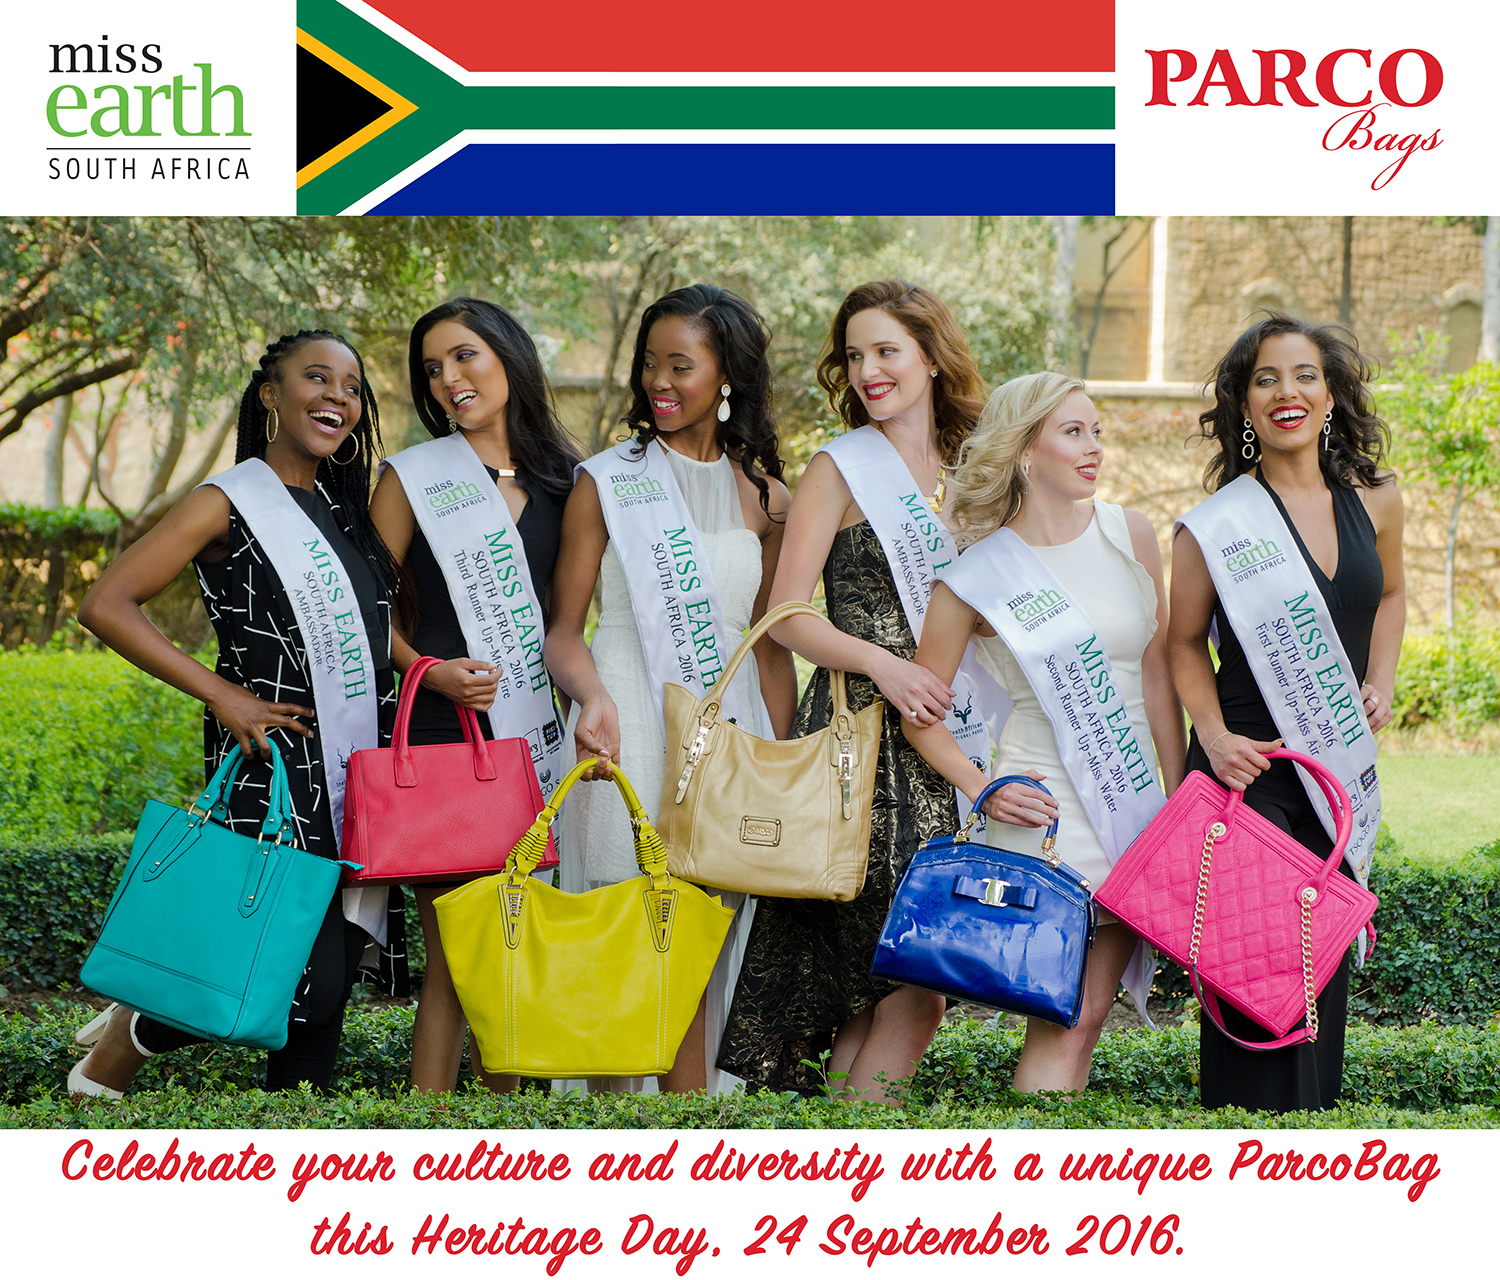 Heritage Day is around the corner, SA!